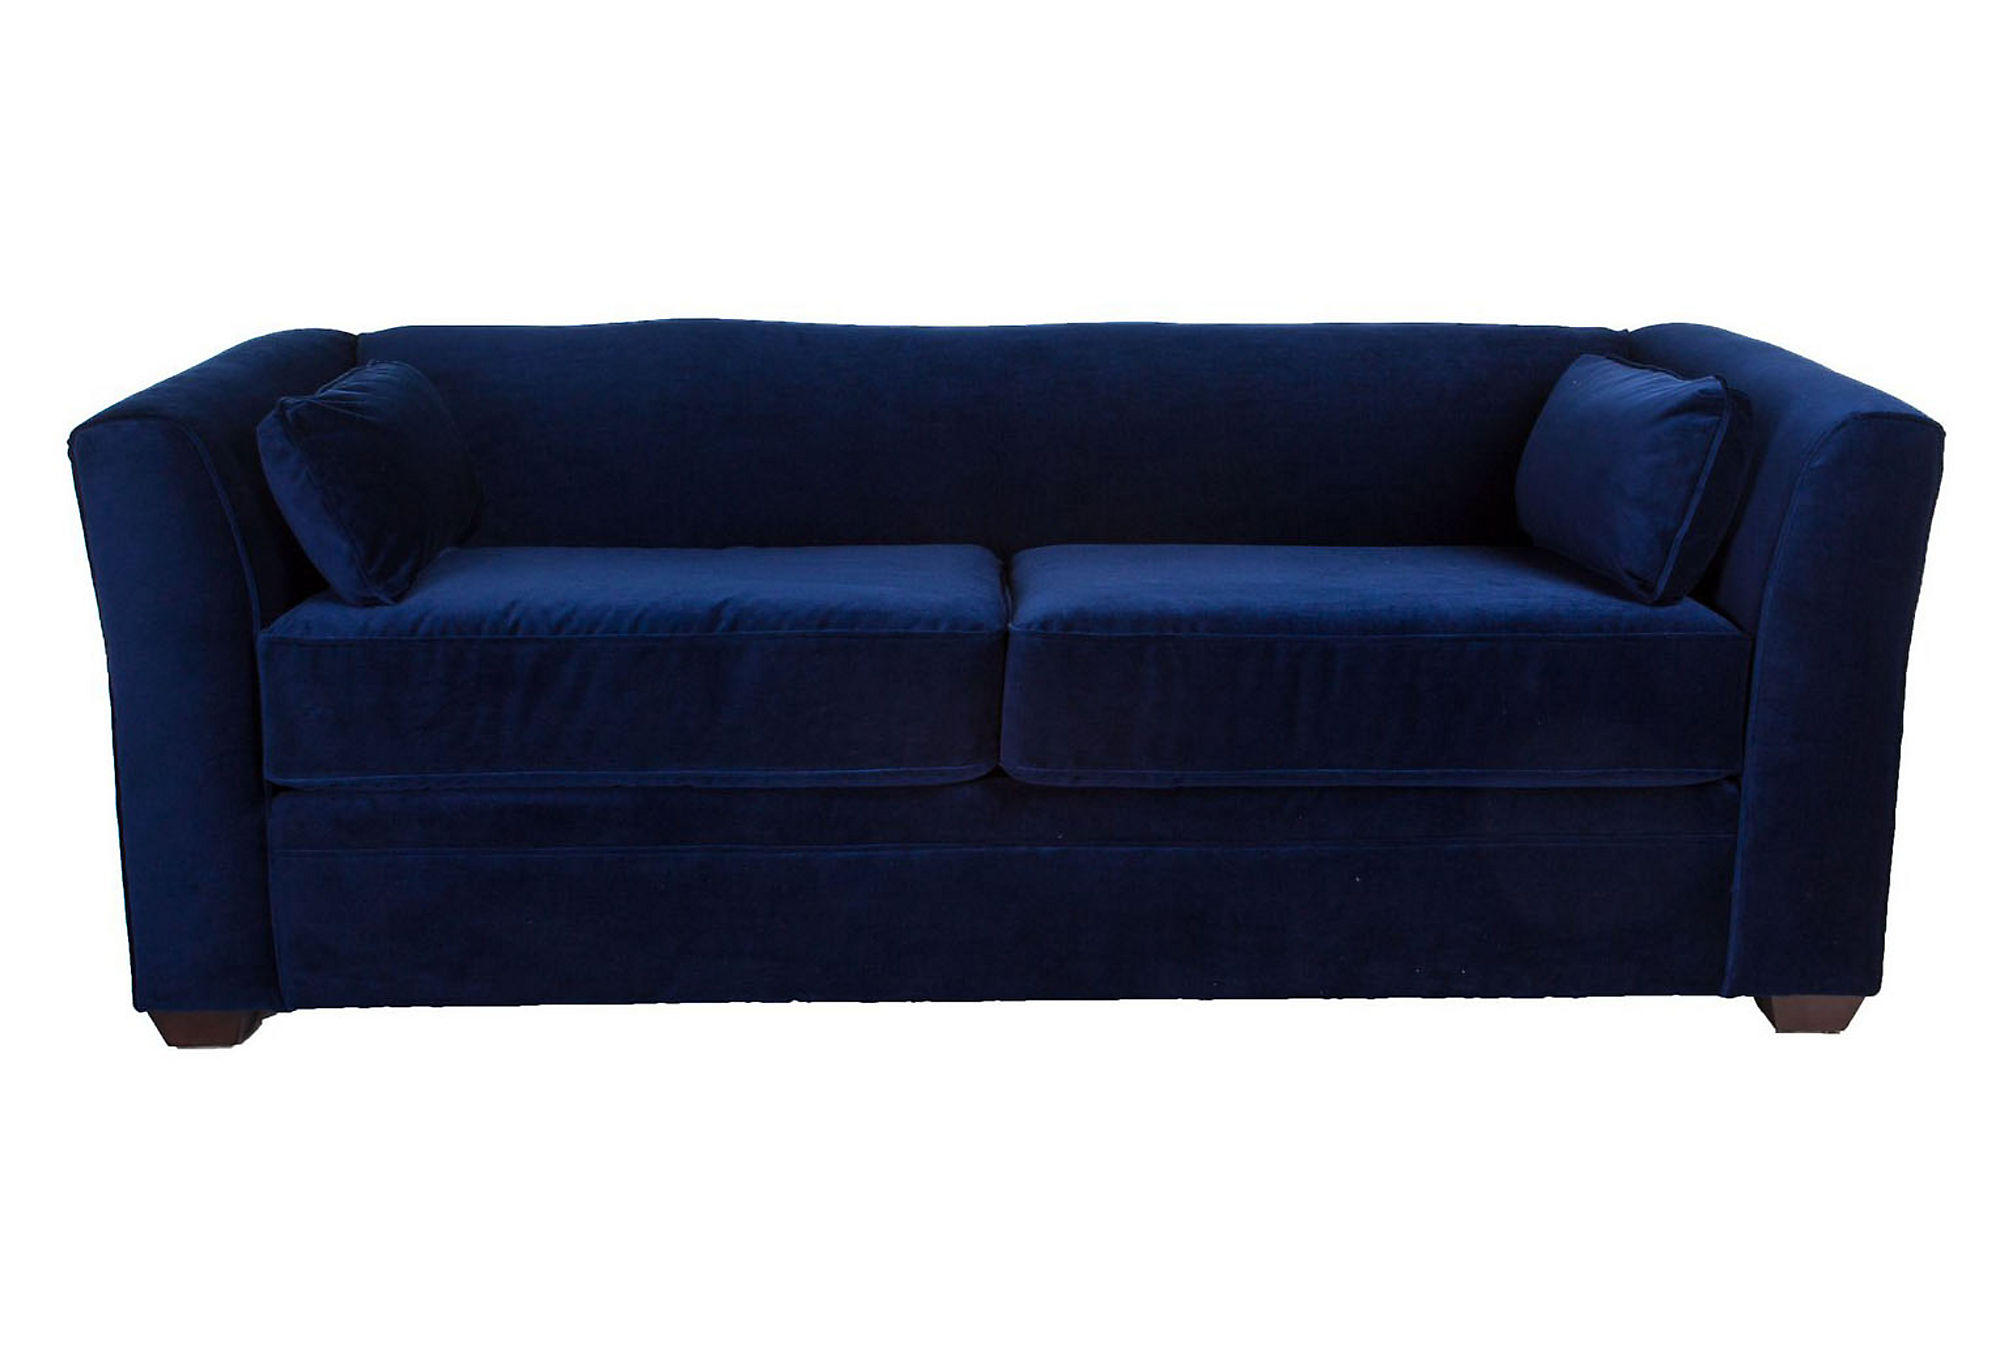 Dita 84quot Tuxedo Sofa Navy Velvet Sofas from One Kings Lane : fullsize from wanelo.com size 2000 x 1362 jpeg 117kB